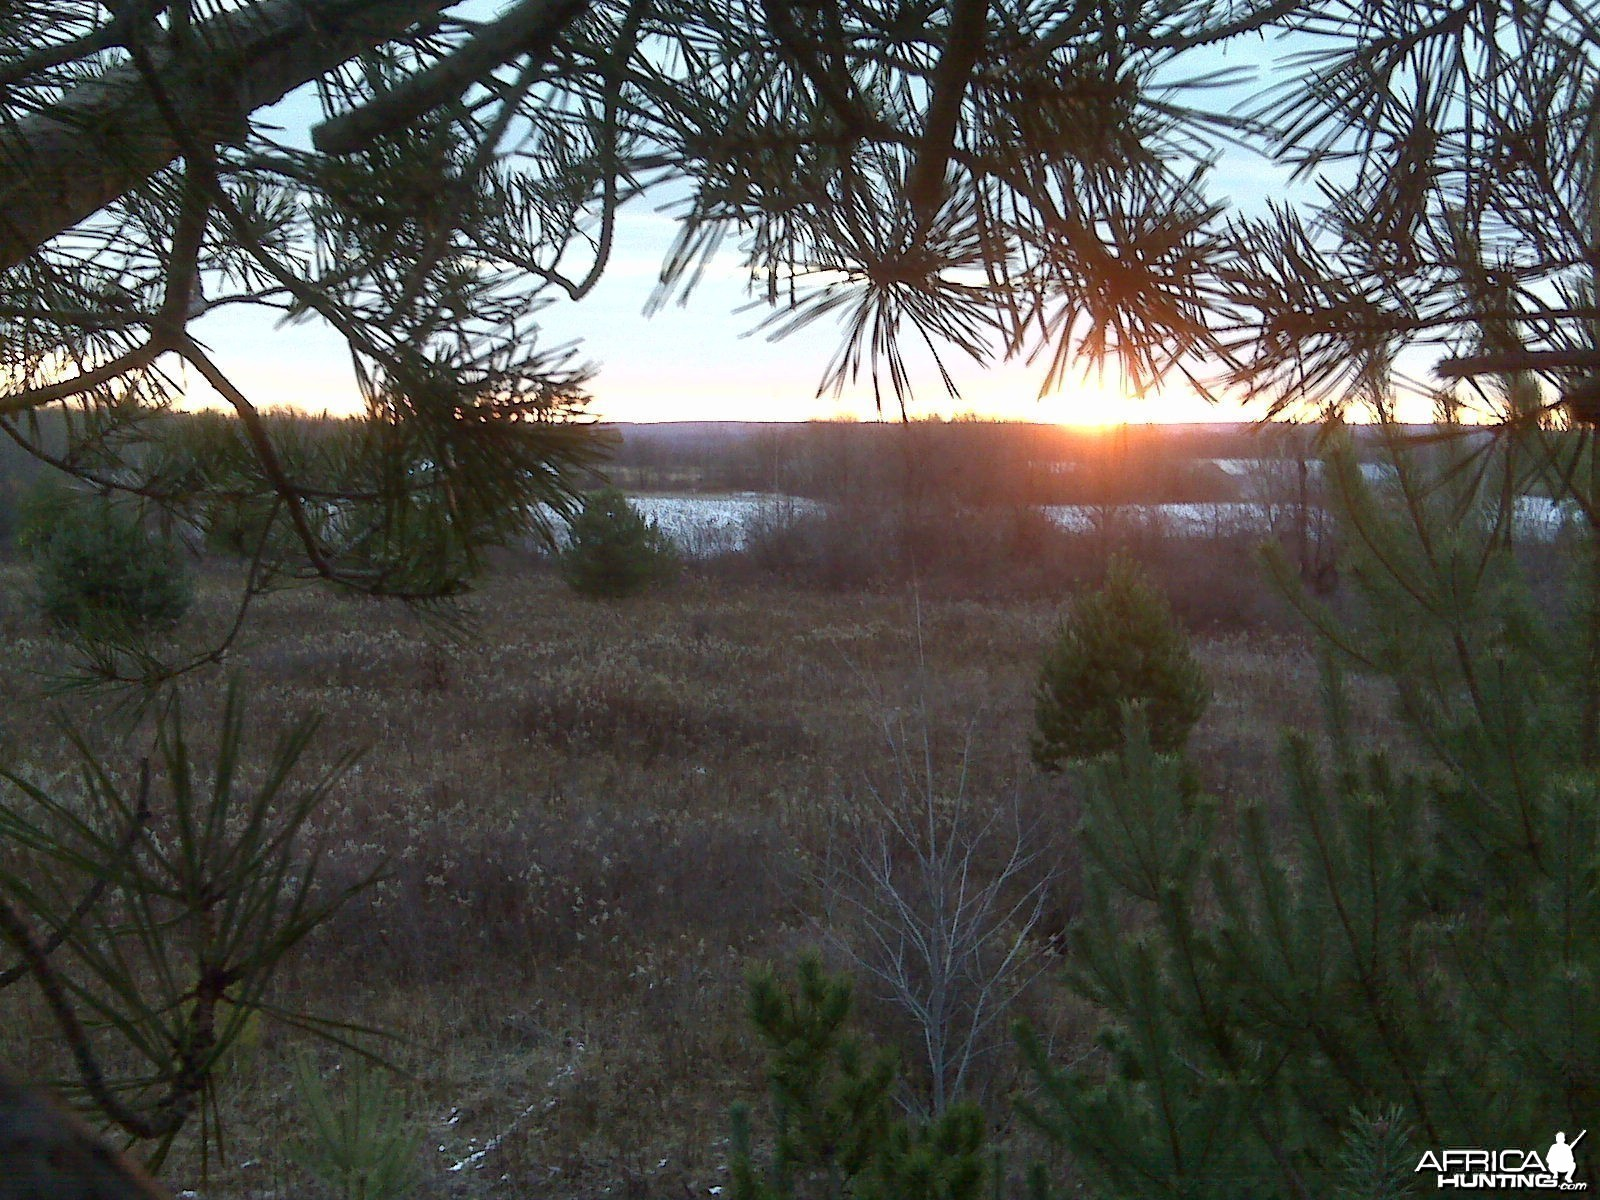 The view from my treestand on opening morning, US